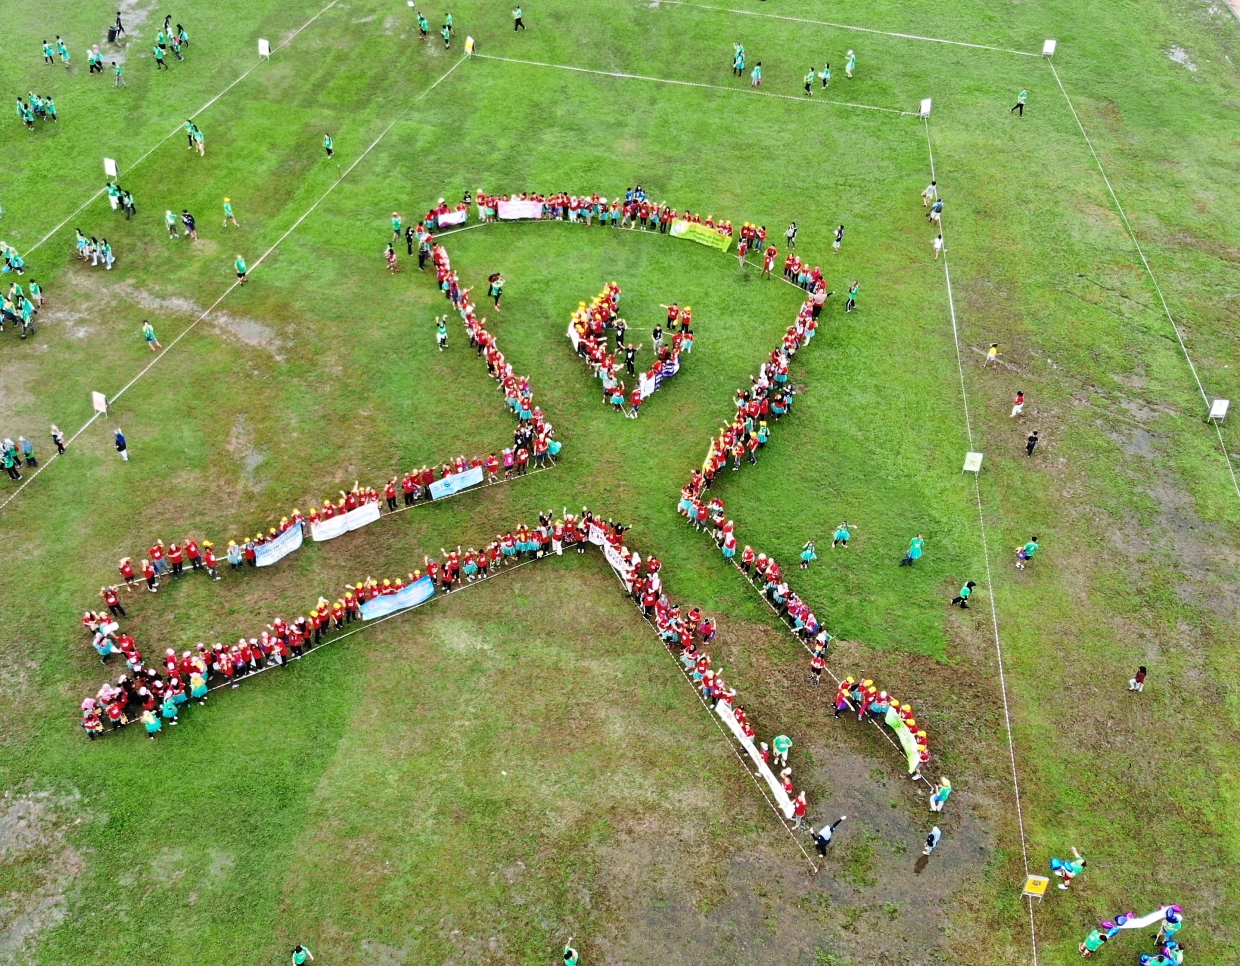 Cancer survivors dressed in red t-shirts forming a red ribbon in the middle of the field to signify their fight for cancer.